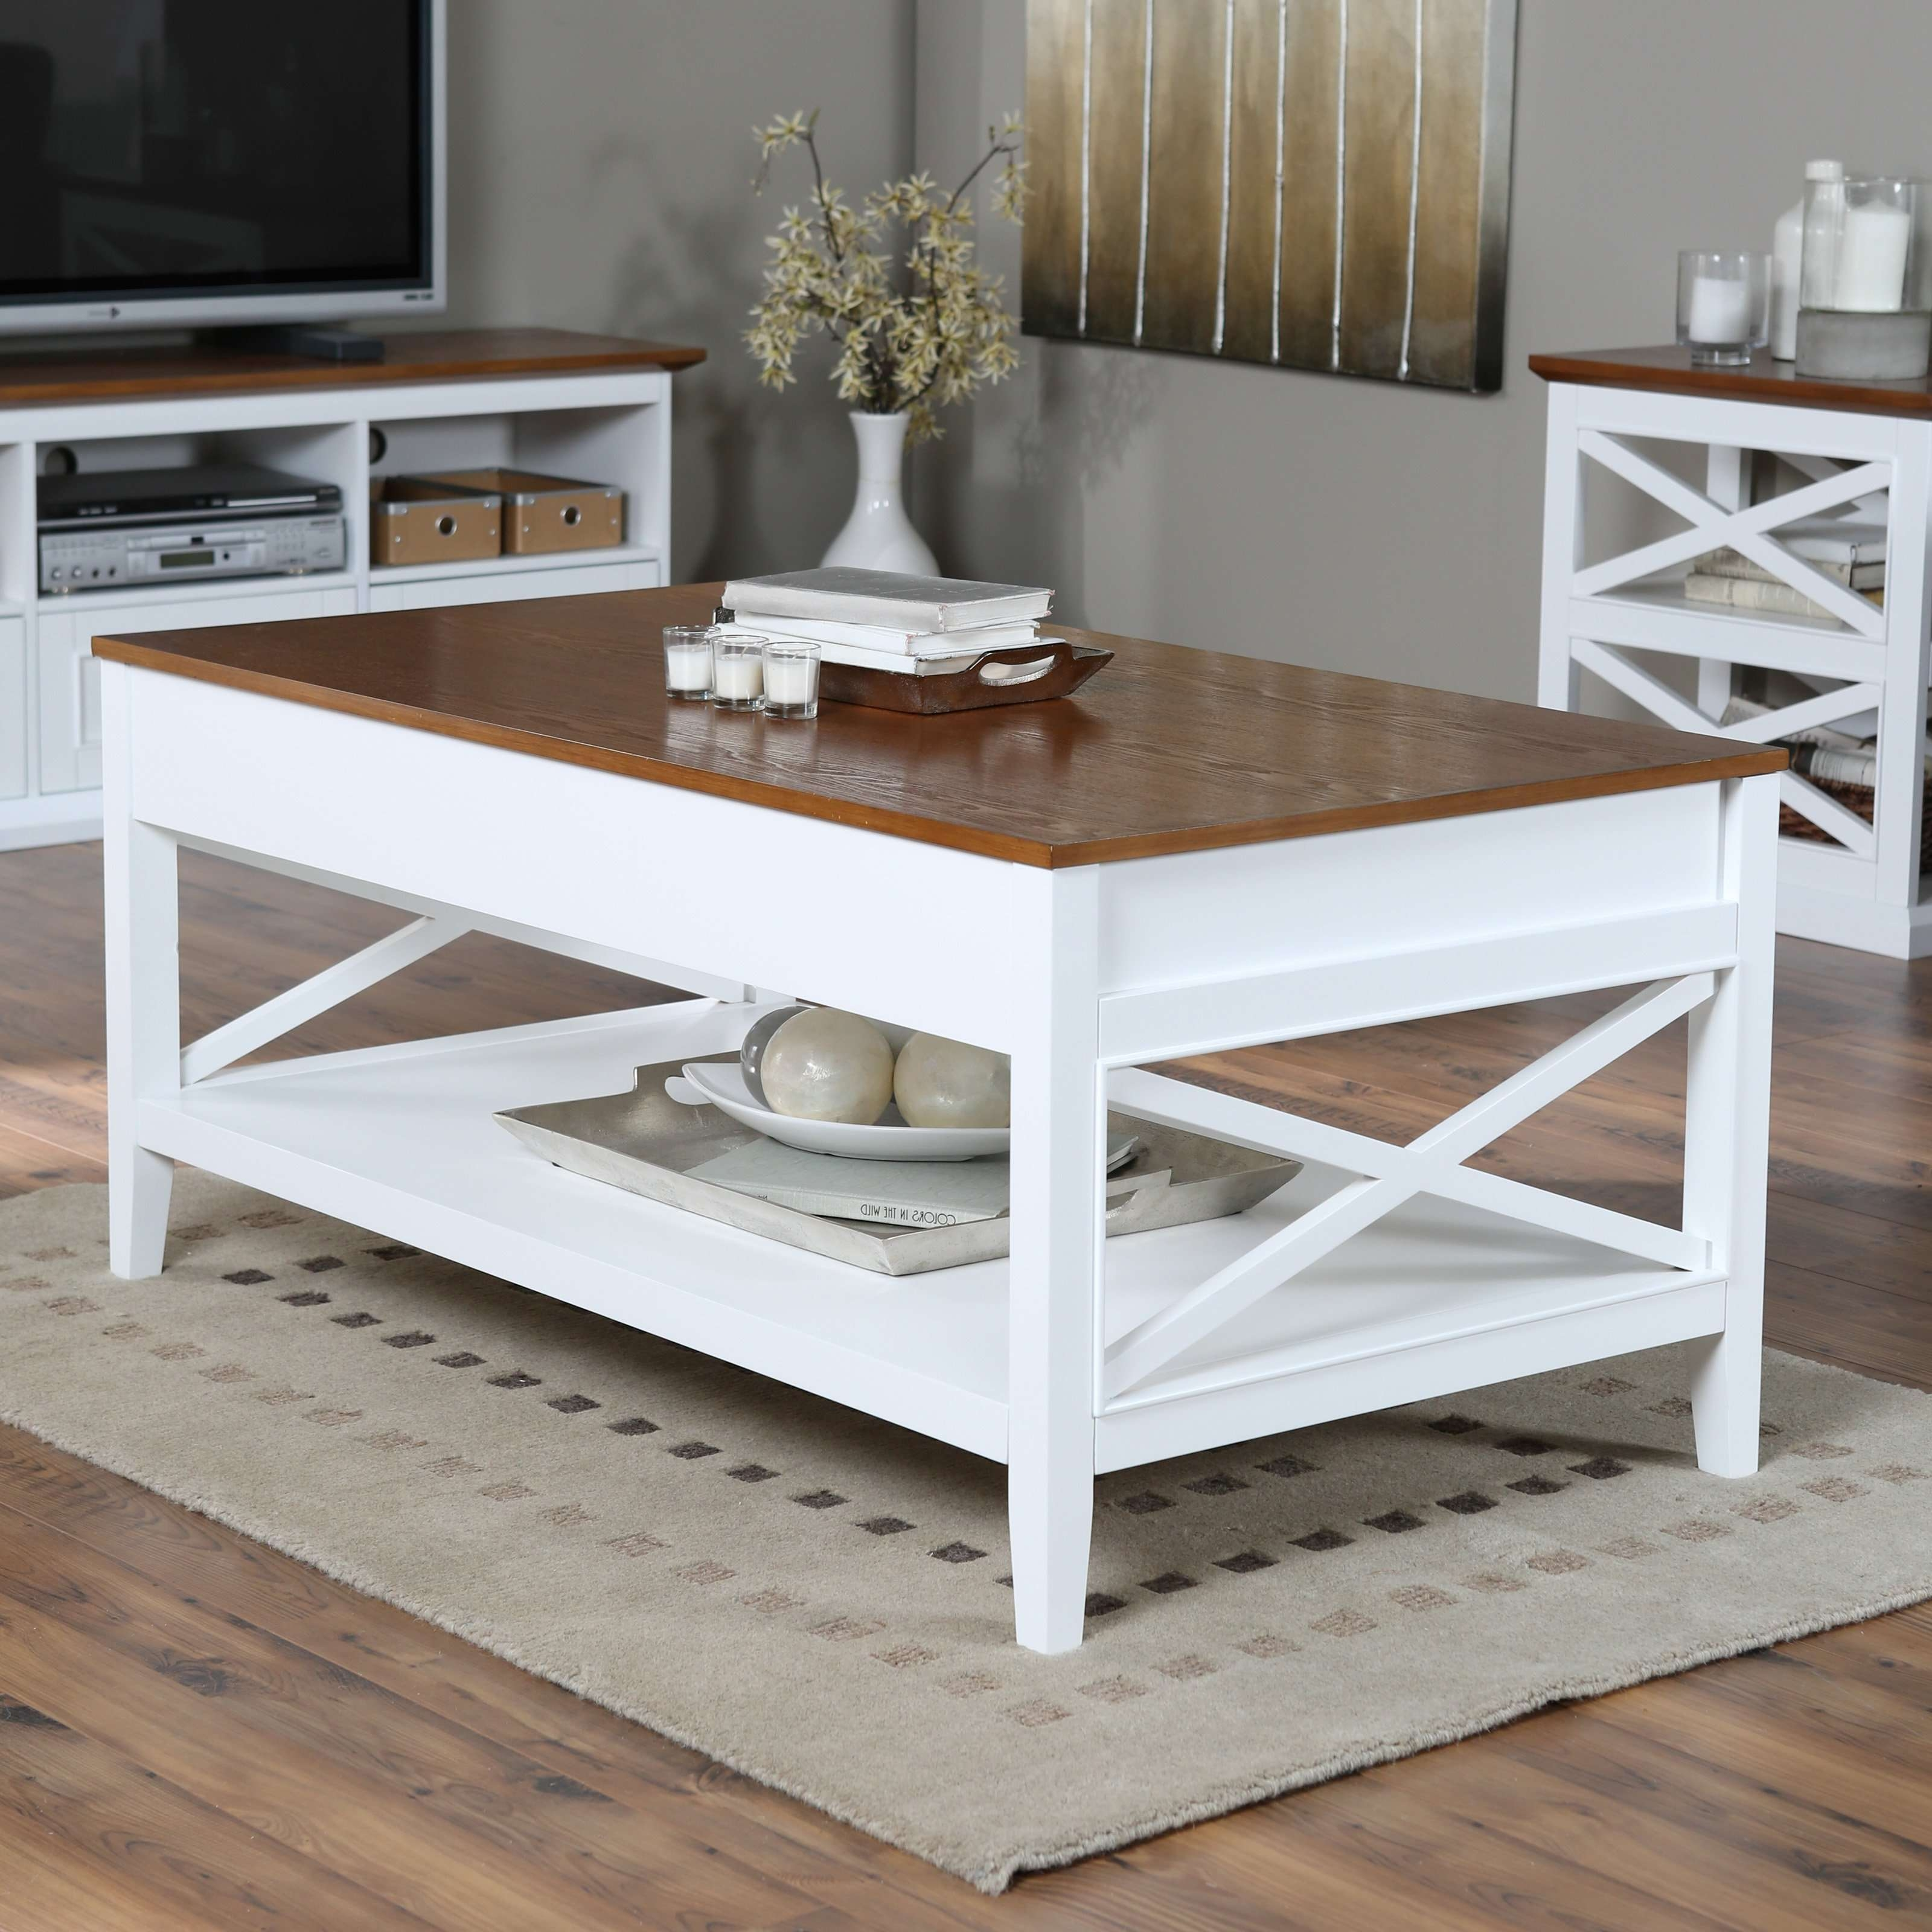 Coffee Tables : Storage Table High Gloss White Coffee With Drawers Regarding Recent Cheap Oak Coffee Tables (View 7 of 20)